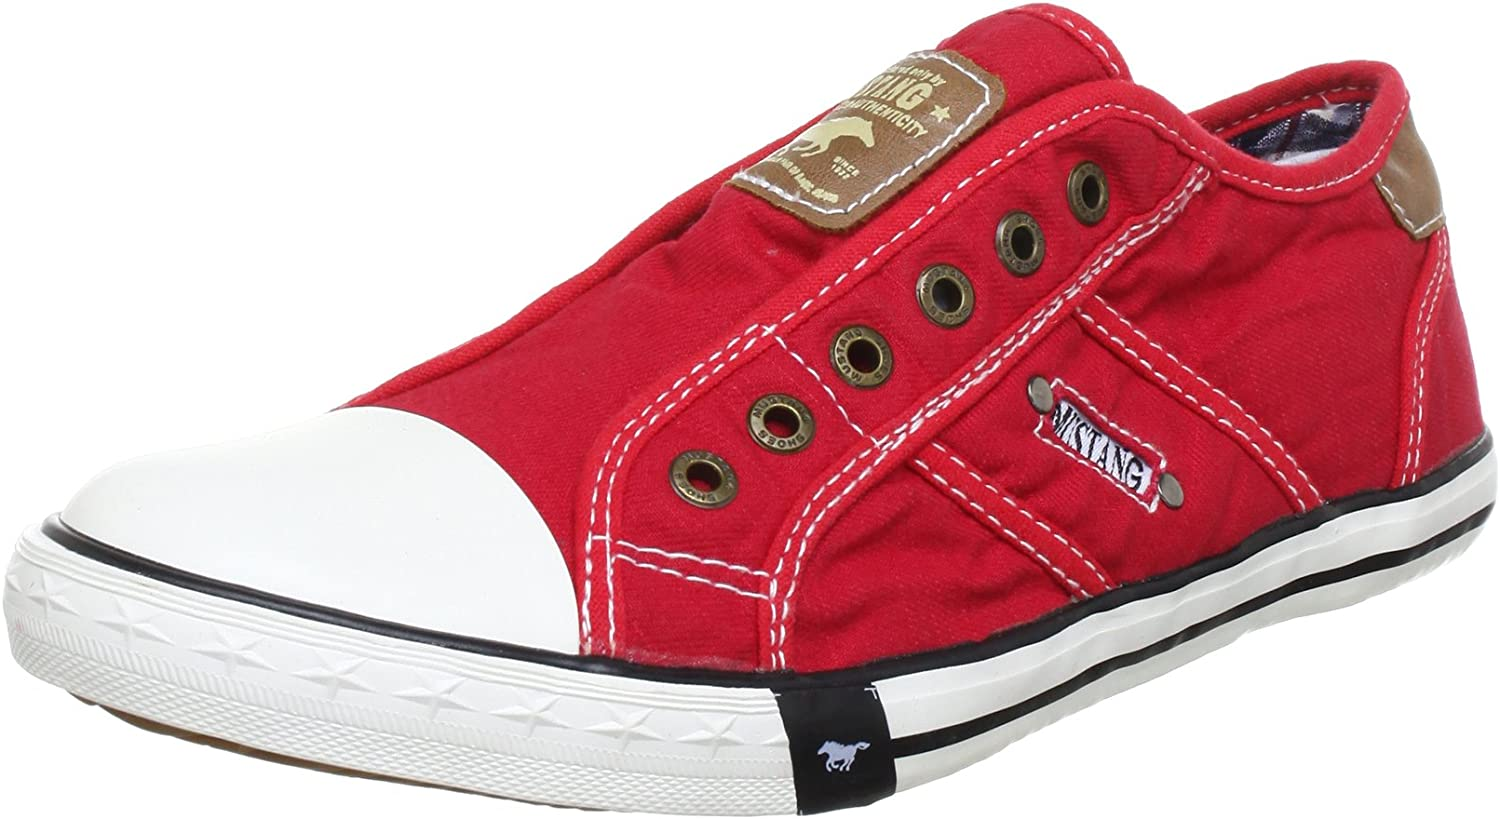 Mustang Wholesale Men's Cheap Loafers Sneakers Hi-Top Trainers